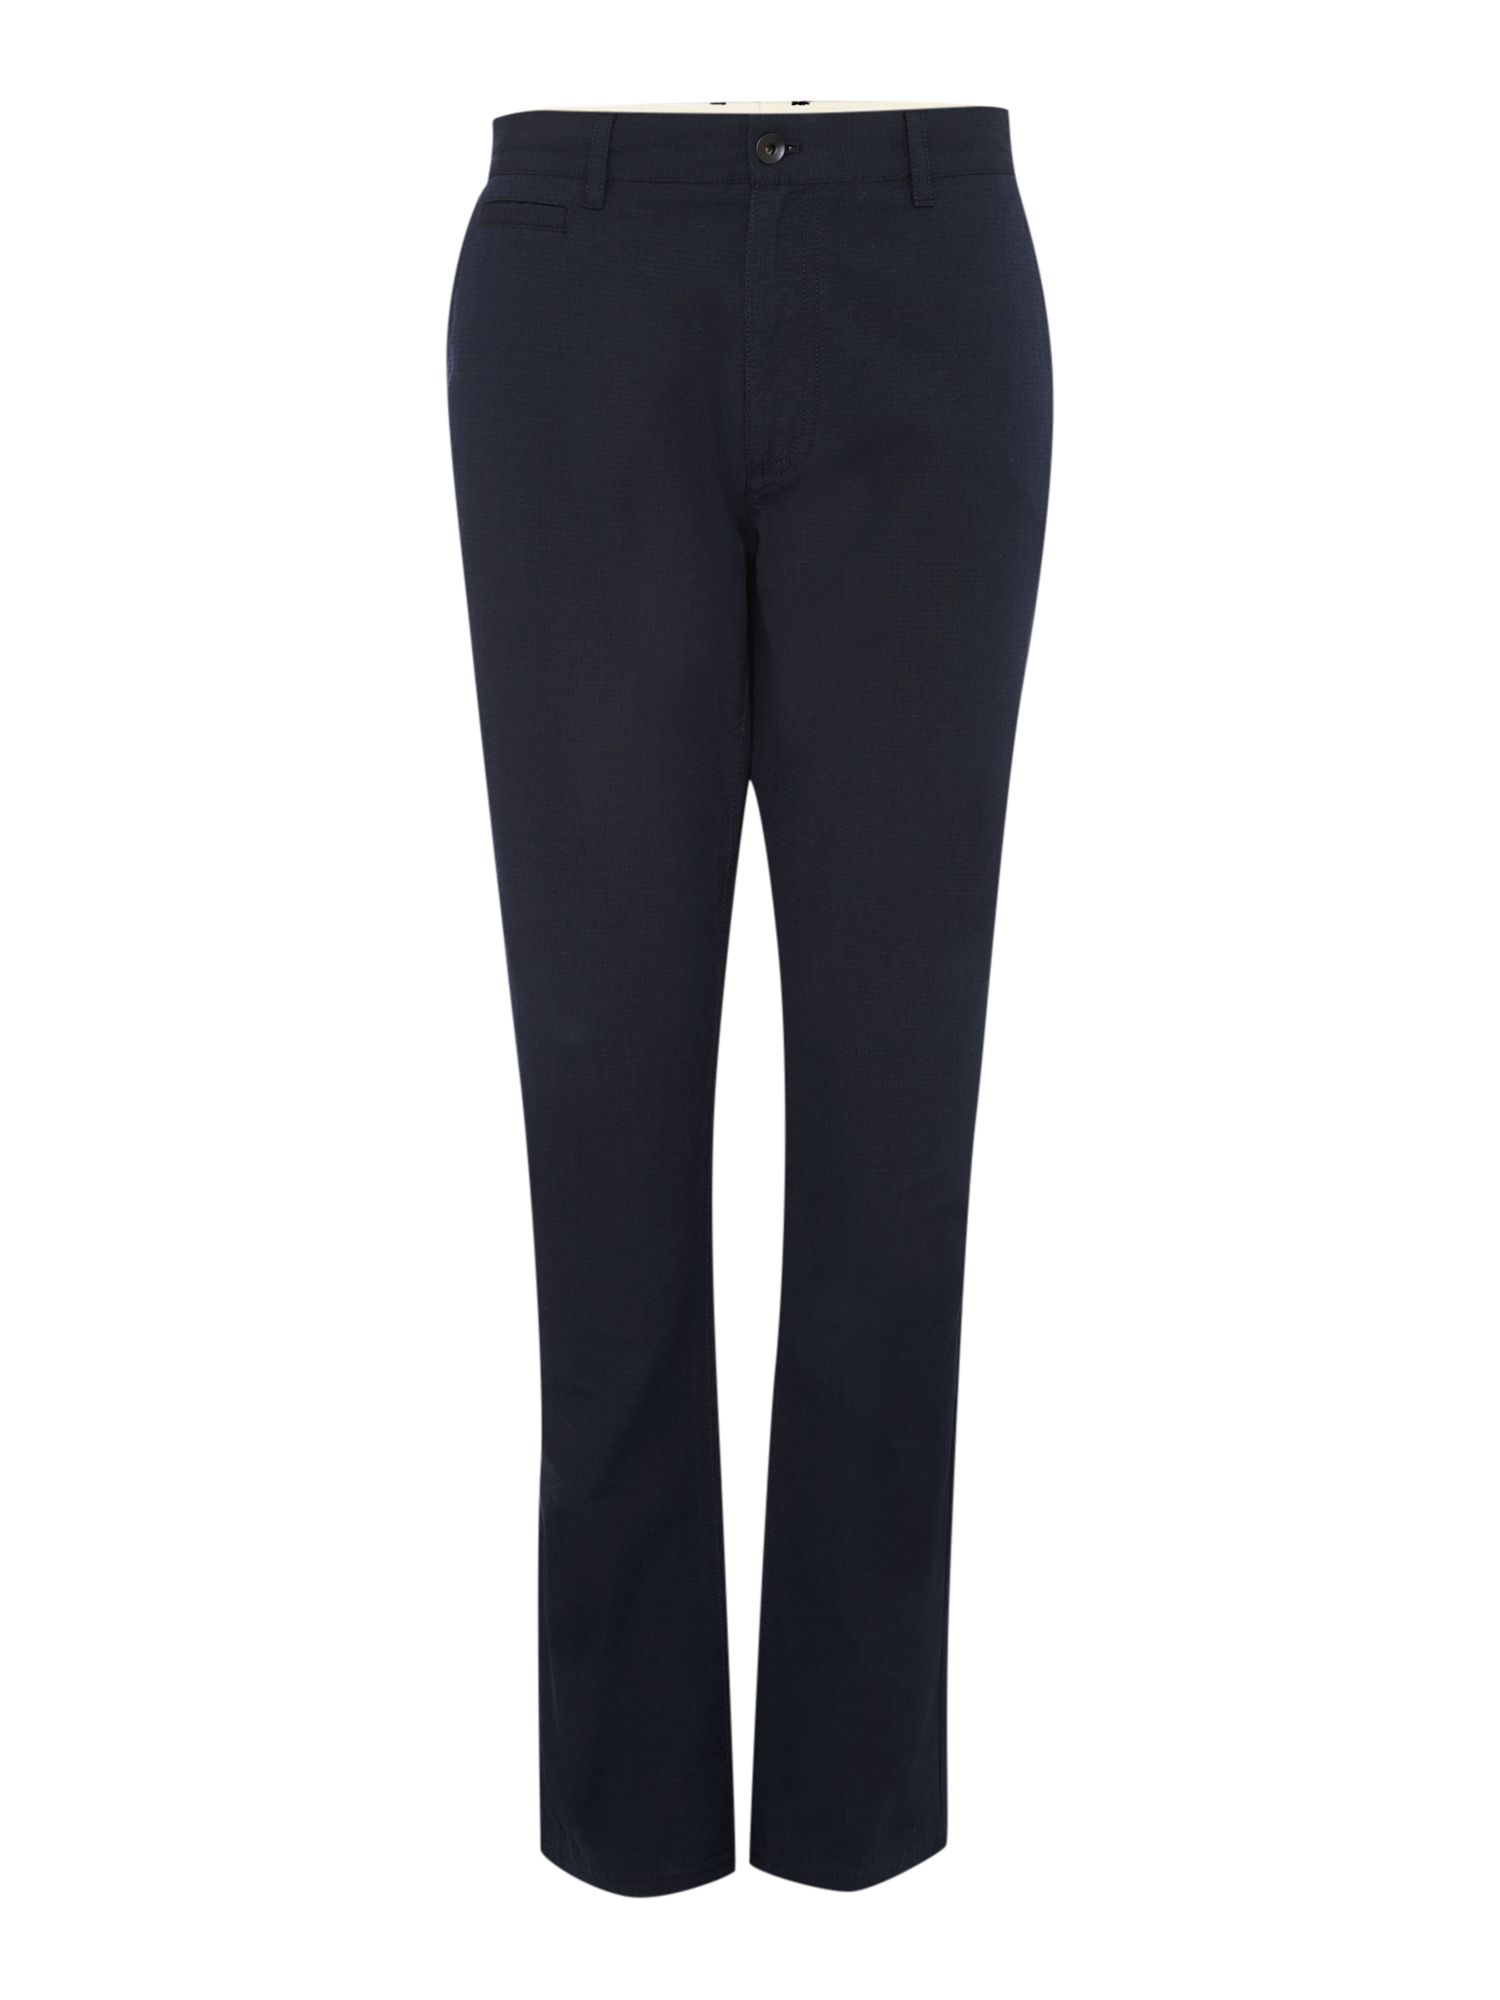 seer textured trousers